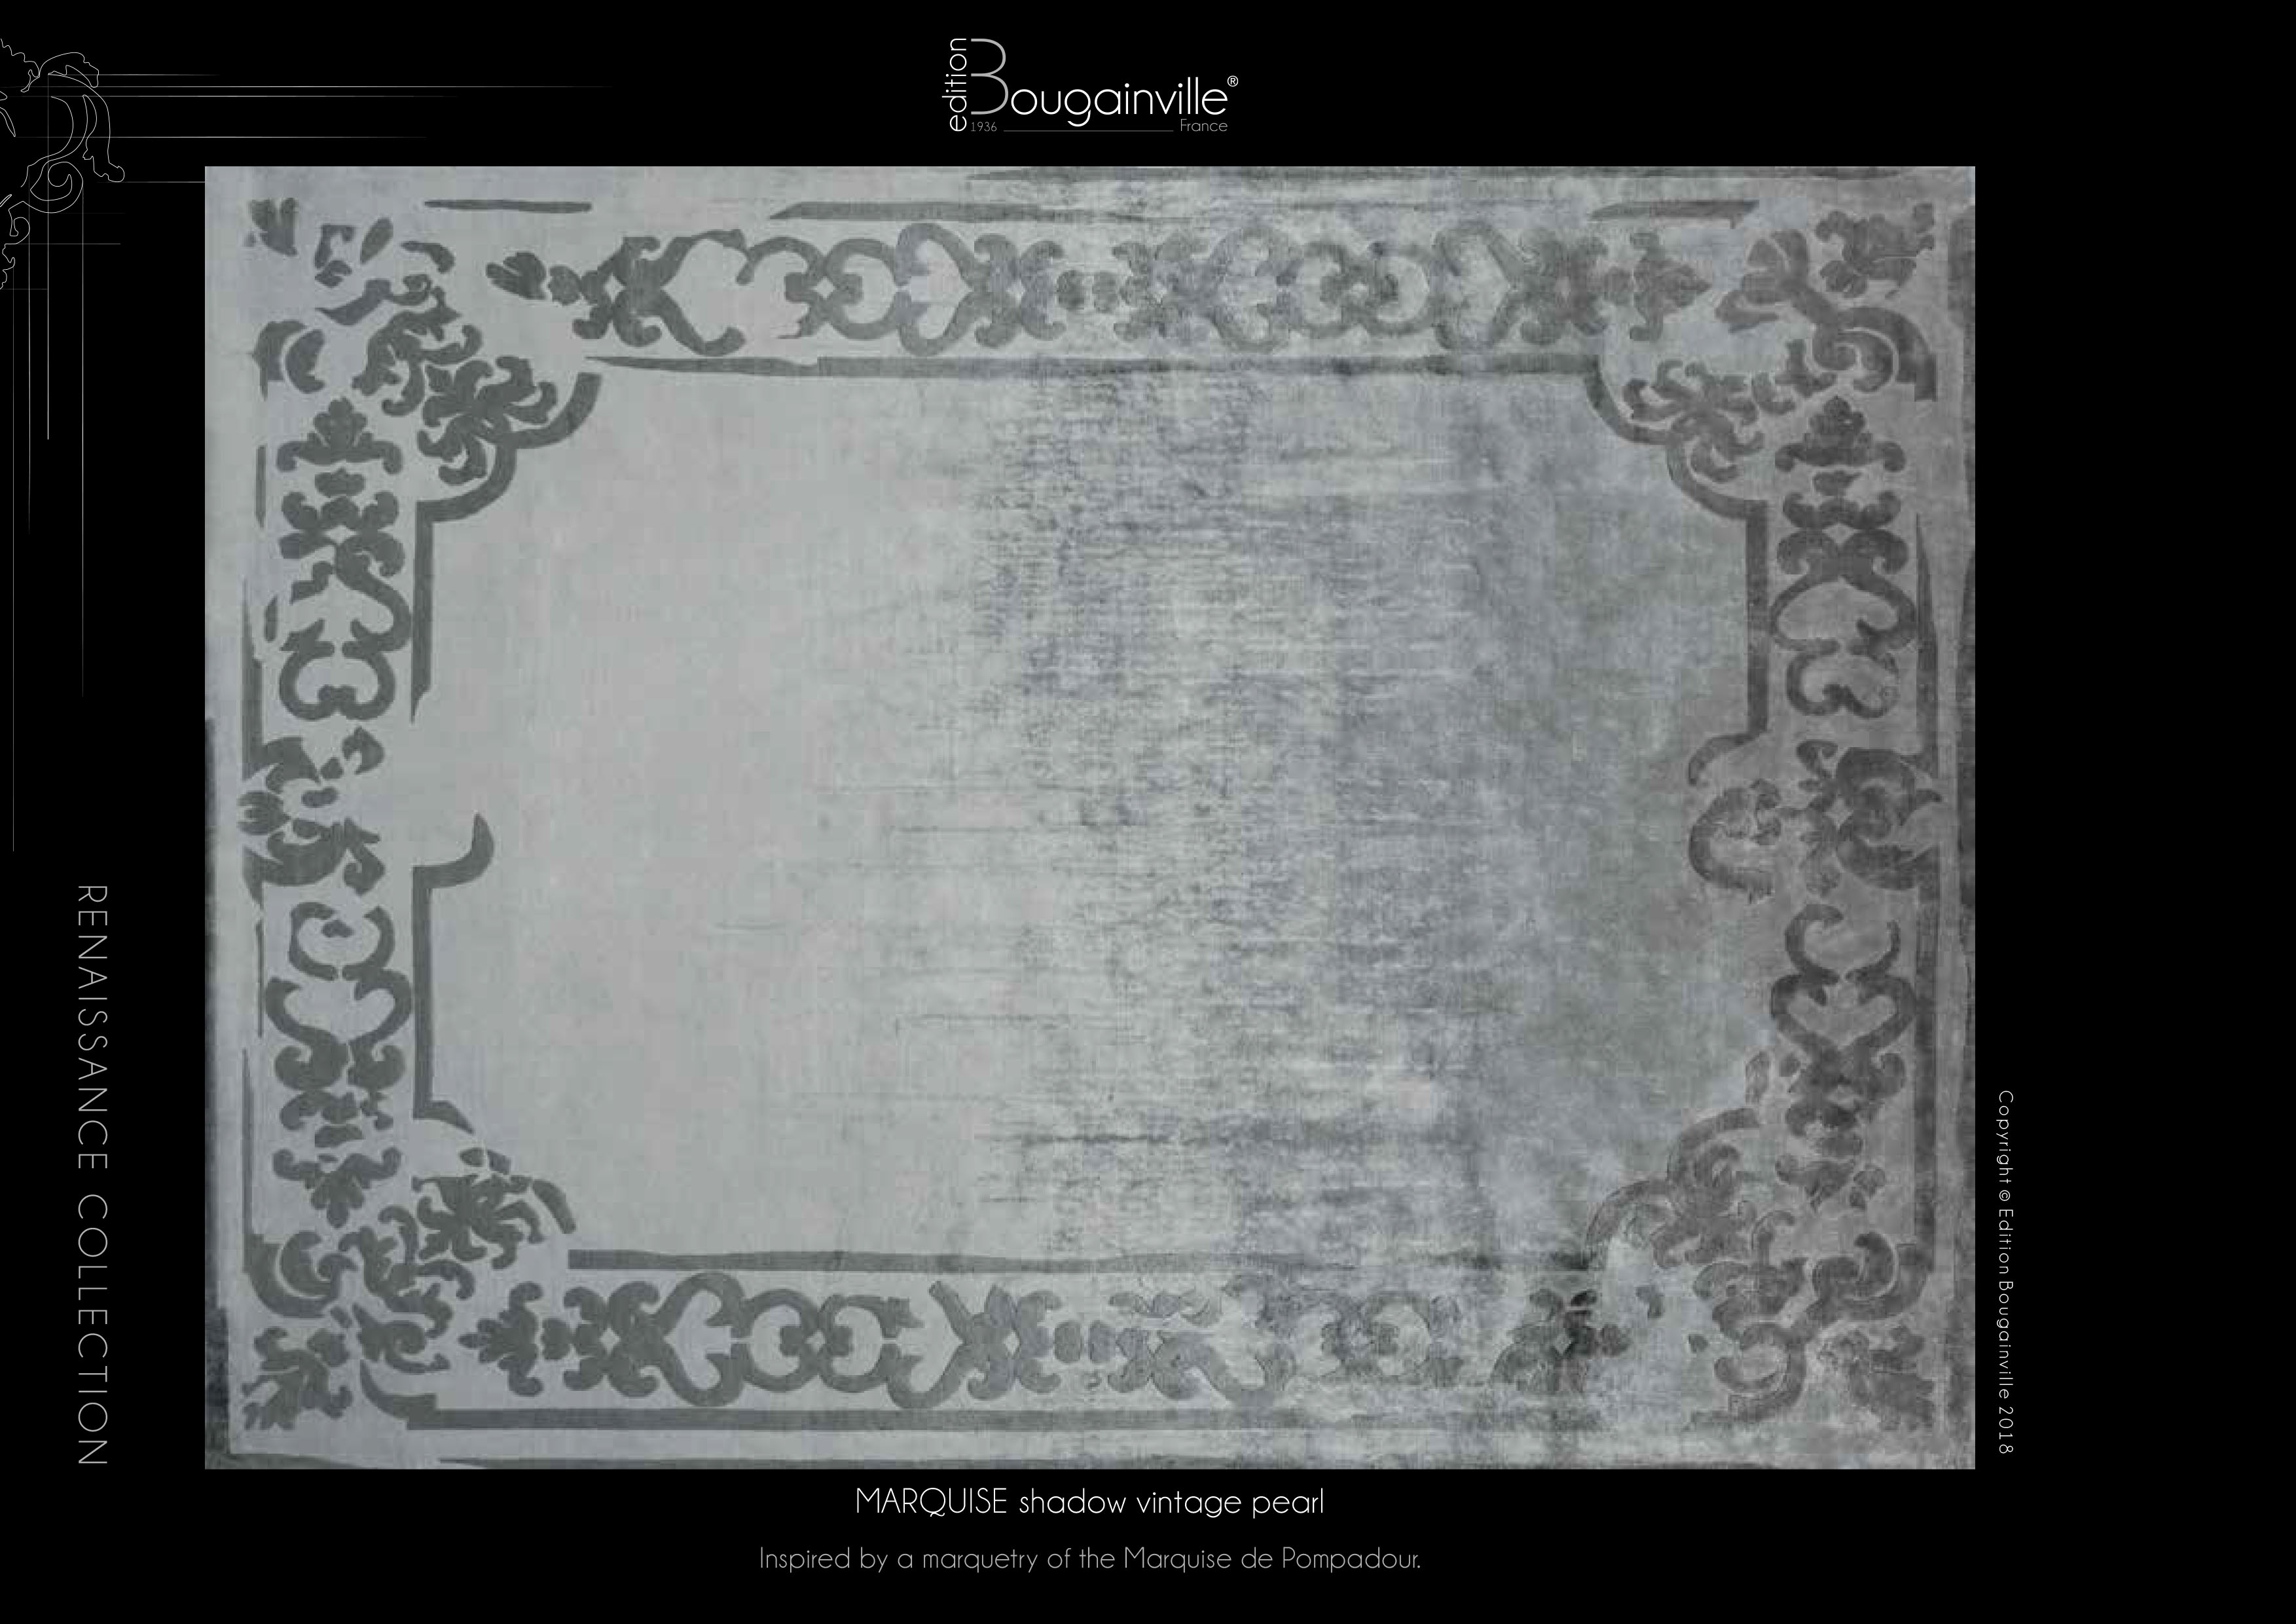 Ковер Edition Bougainville, MARQUISE shadow vintage pearl